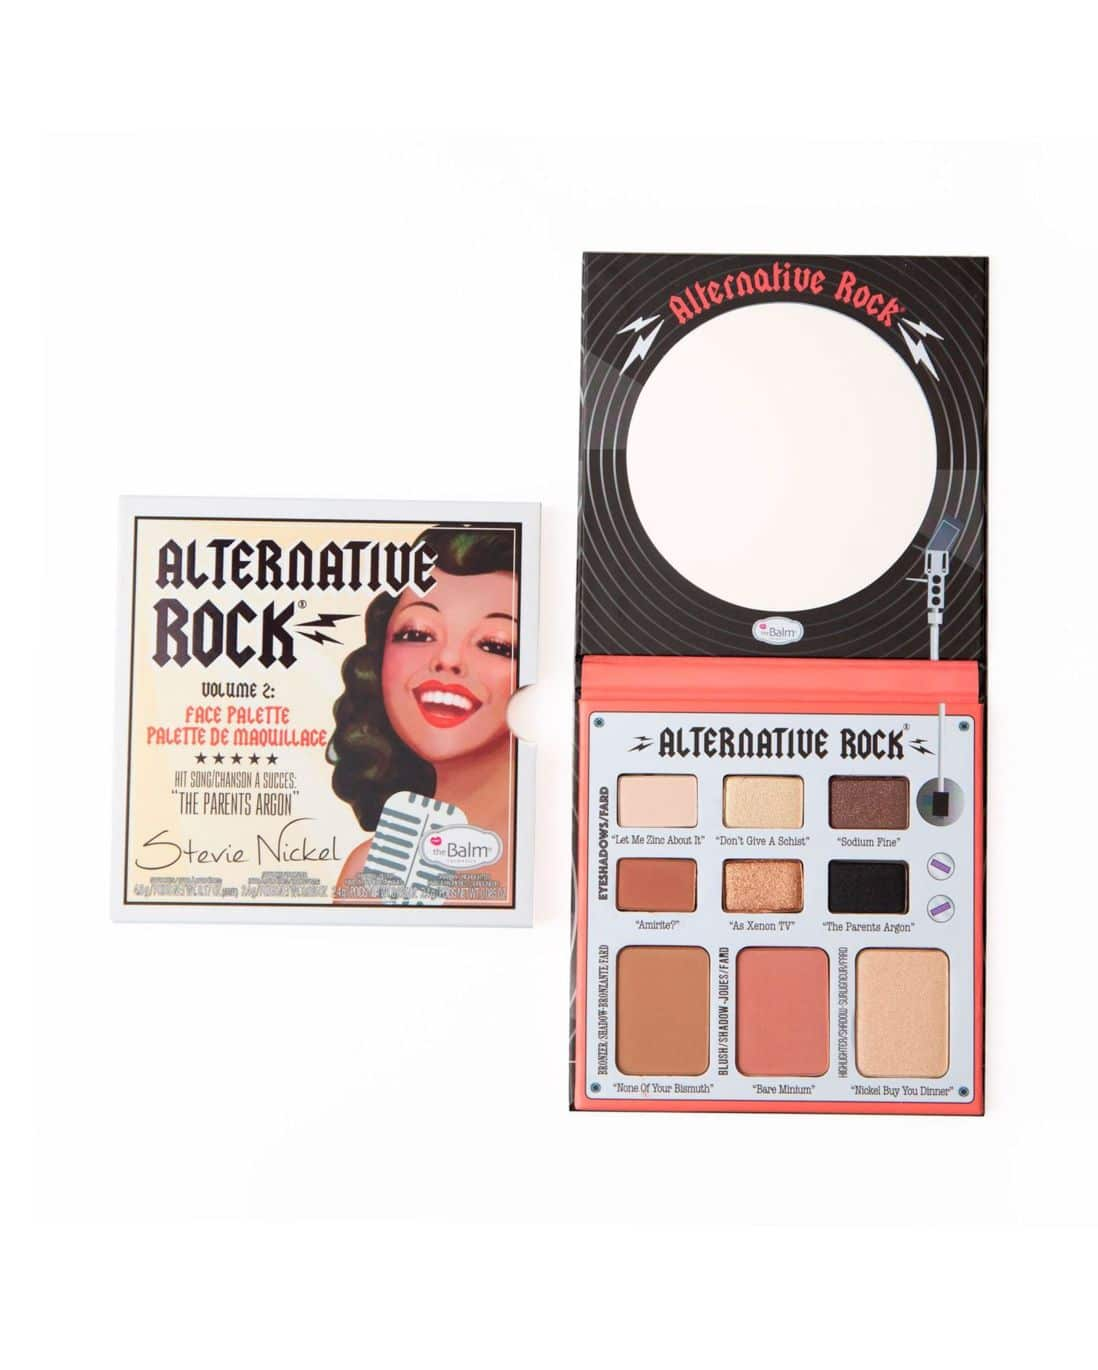 Paleta de Maquiagem Alternative Rock Volume 2 The Balm